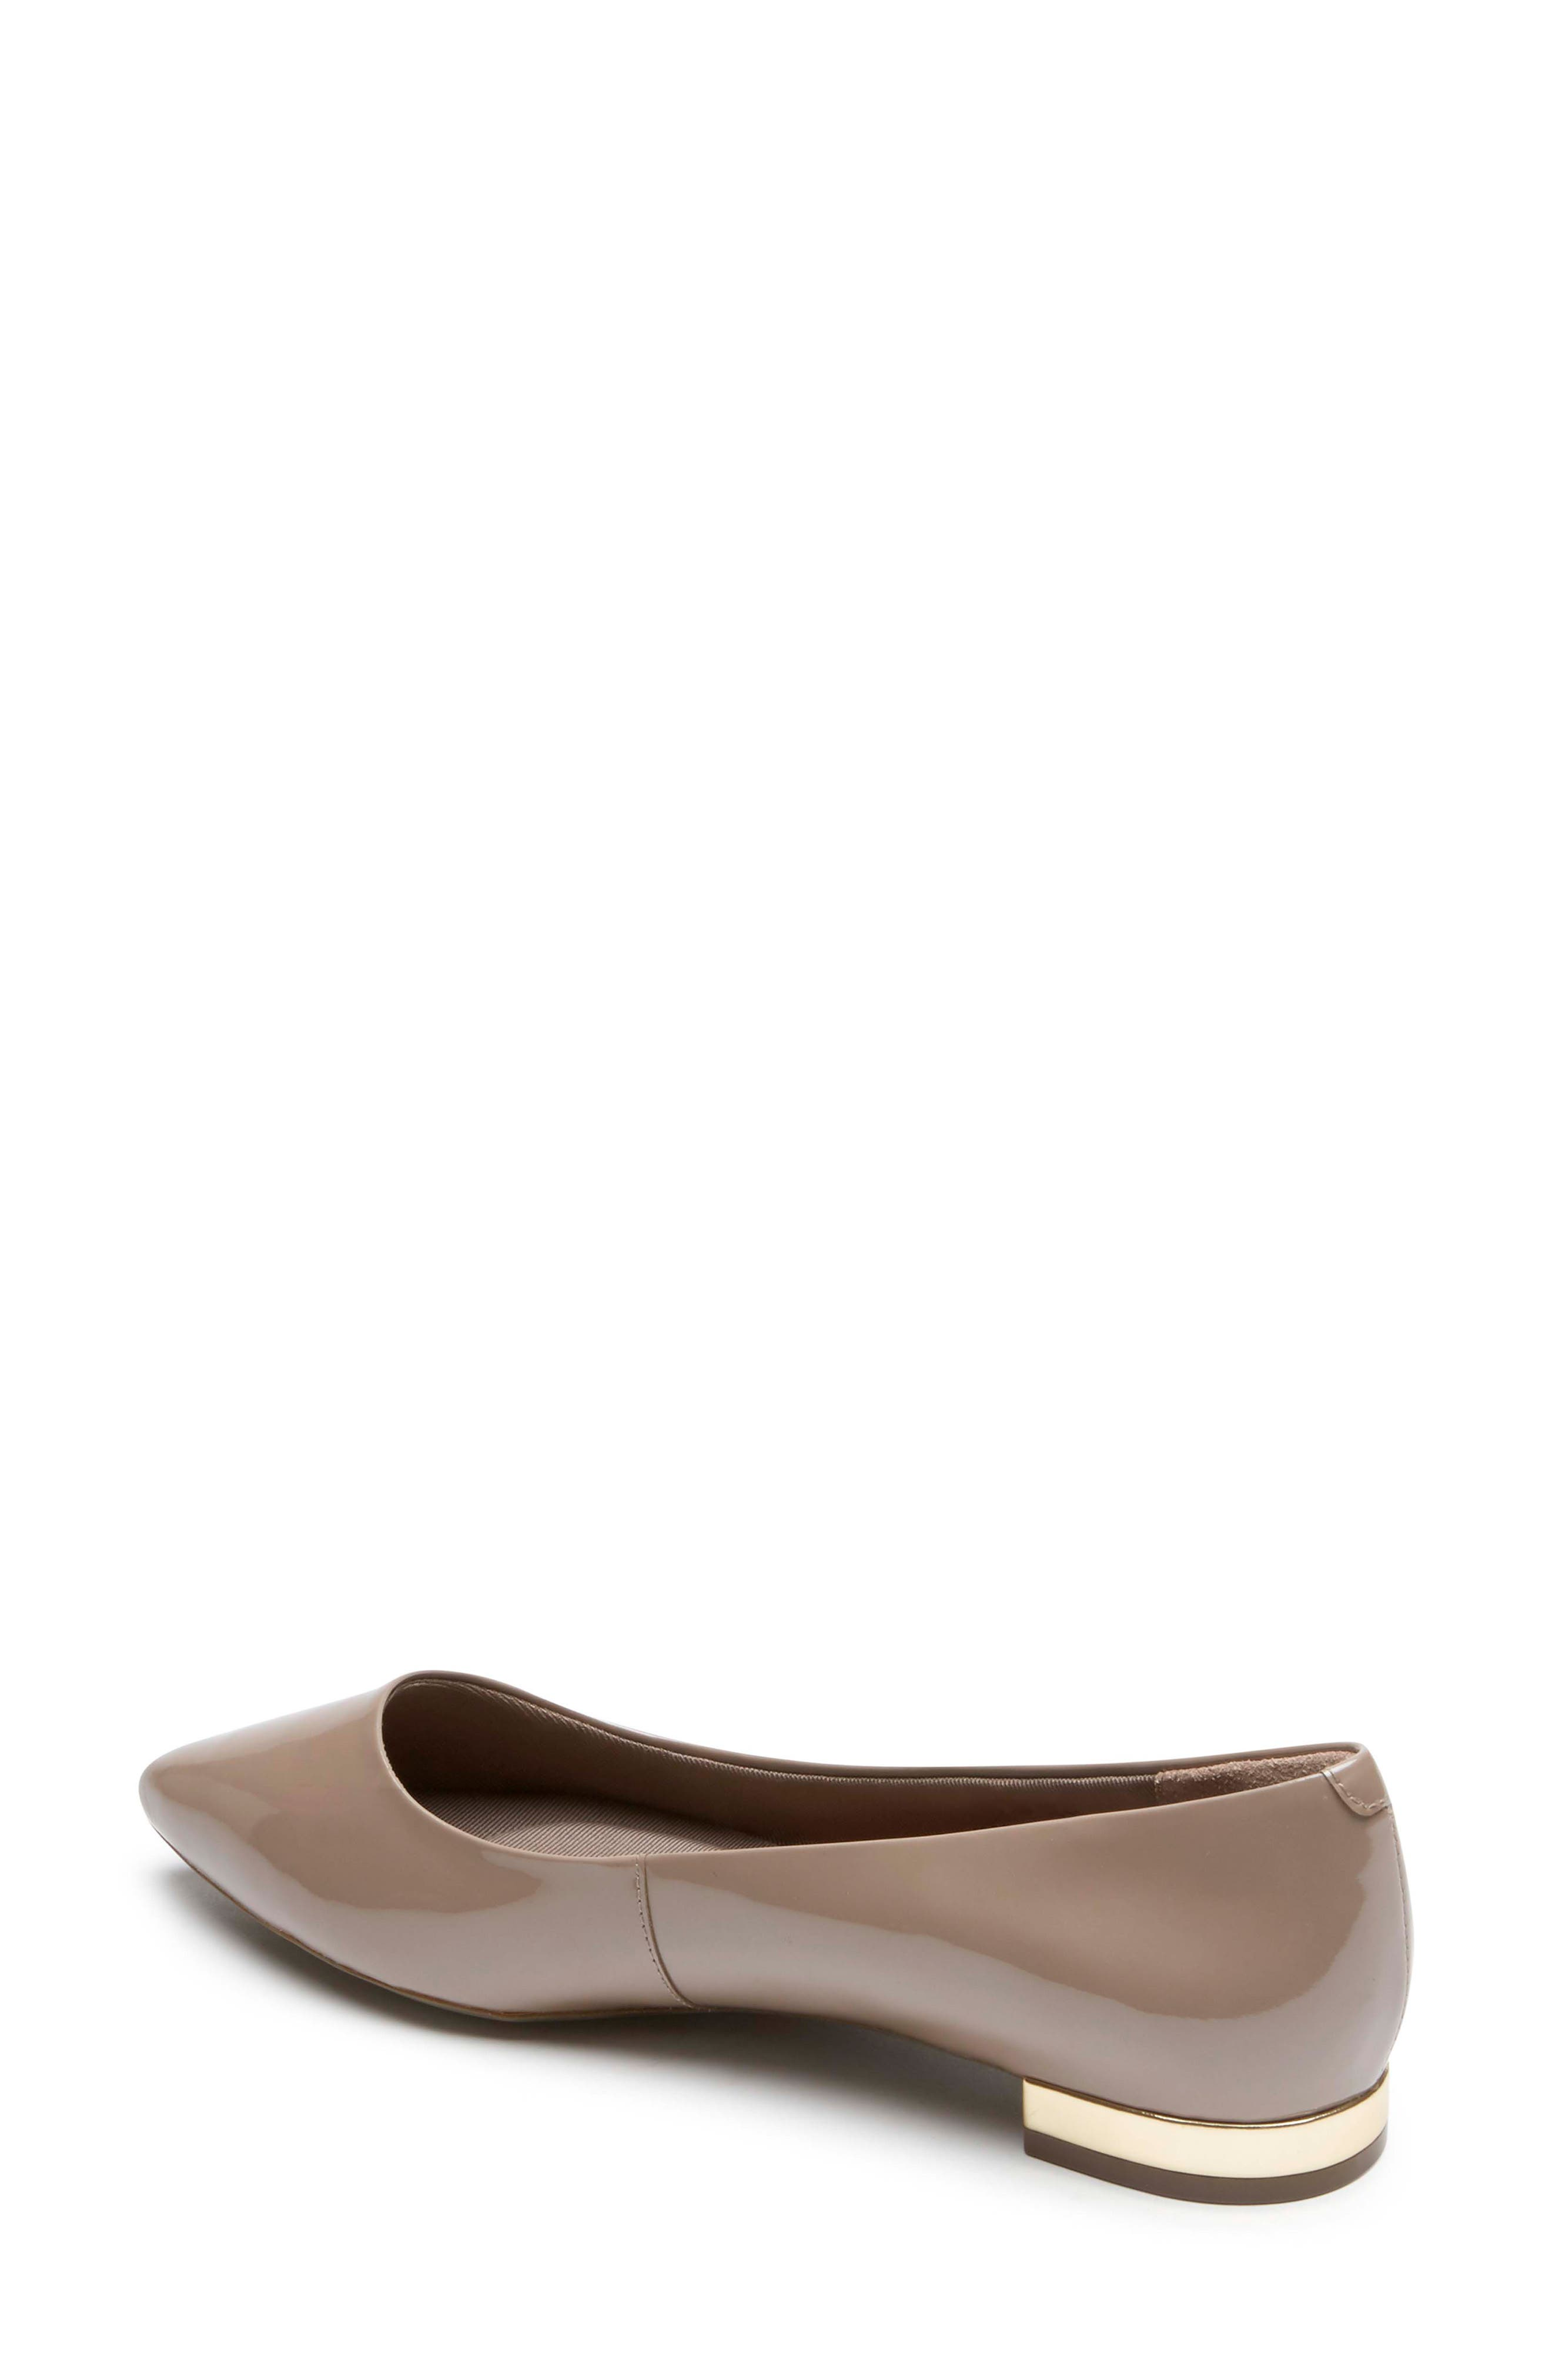 'Total Motion - Adelyn' Ballet Flat,                             Alternate thumbnail 2, color,                             TAUPE GREY PEARL PATENT